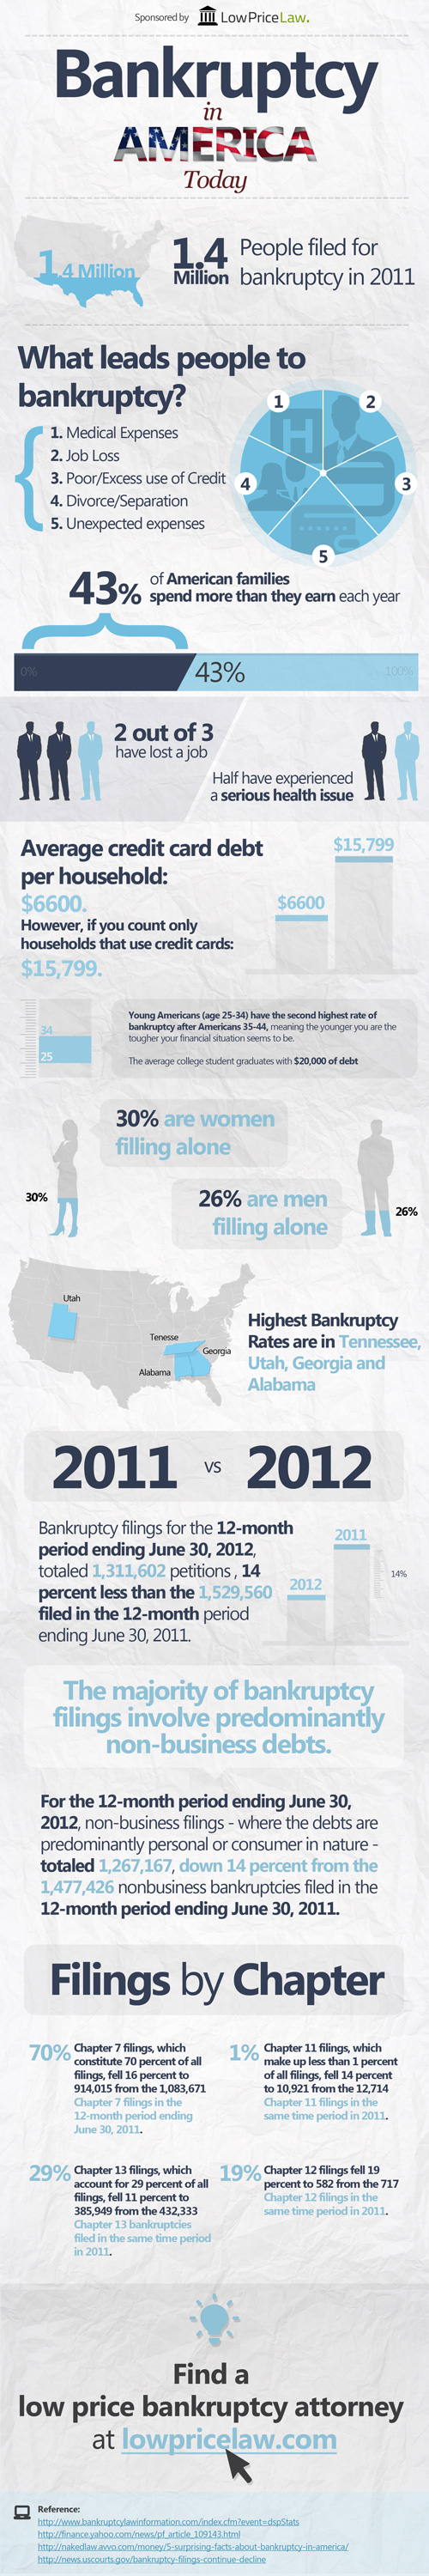 American Bankruptcy 2012-Infographic